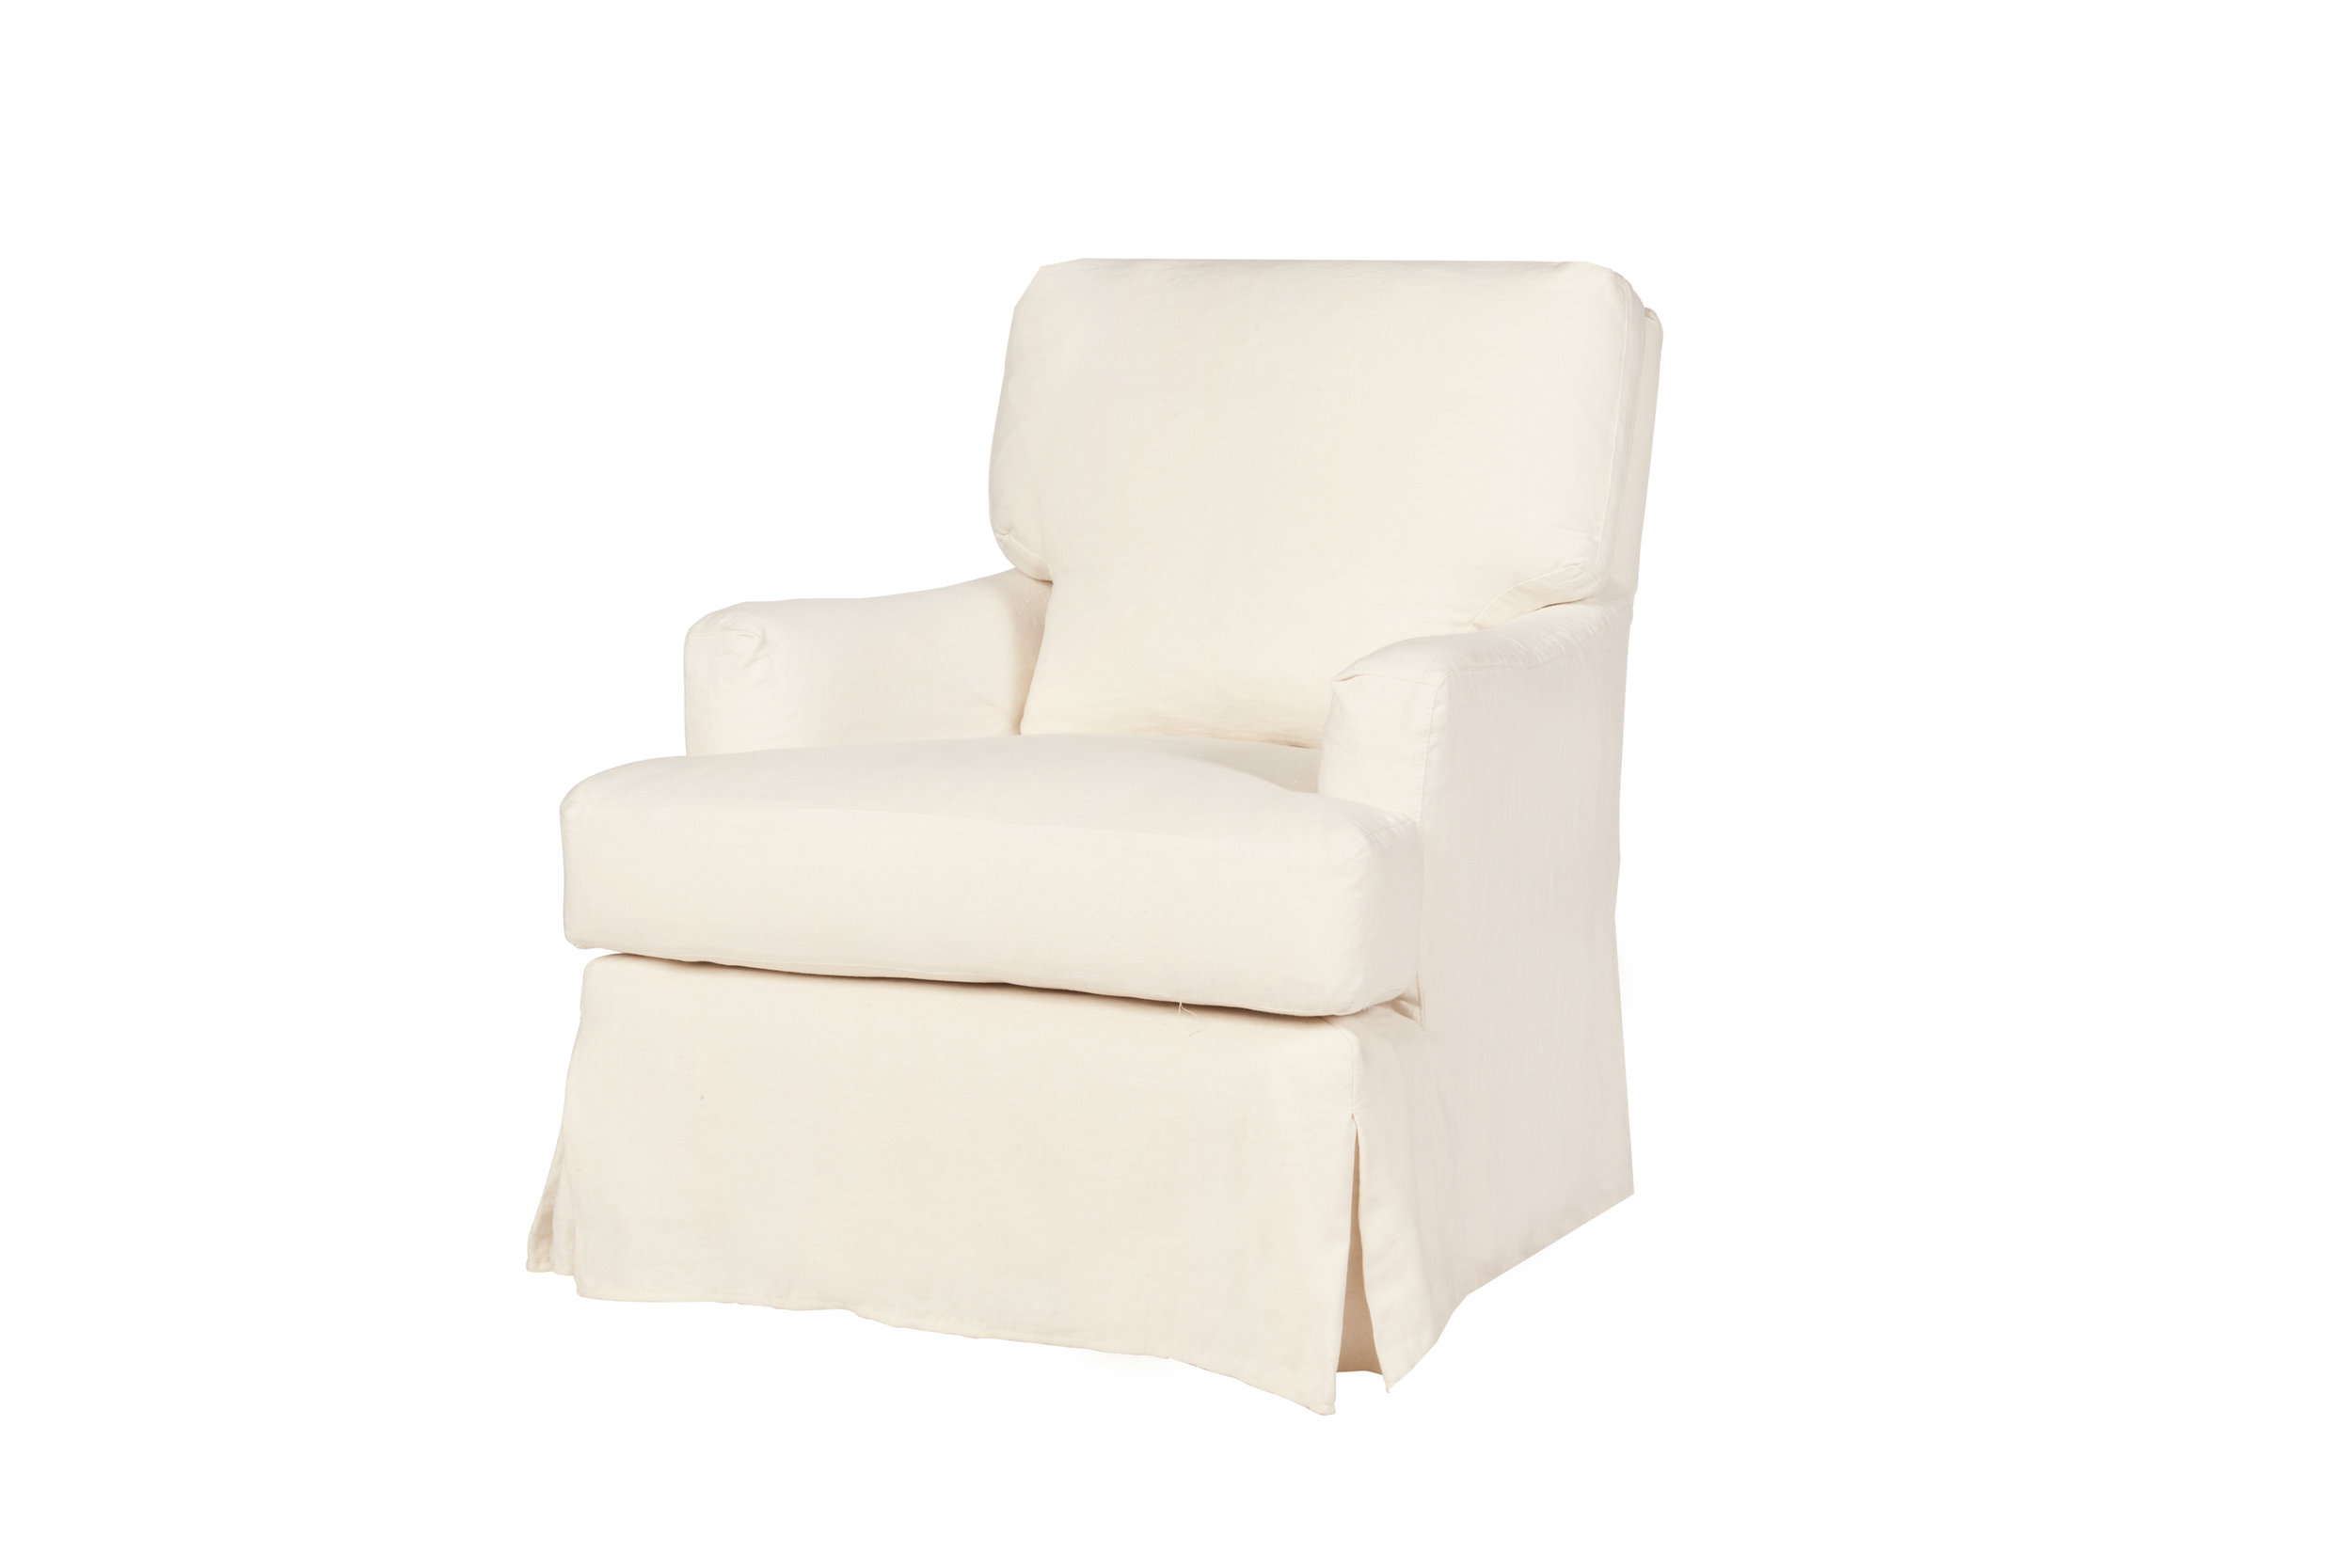 England Chair by Cisco $2,115